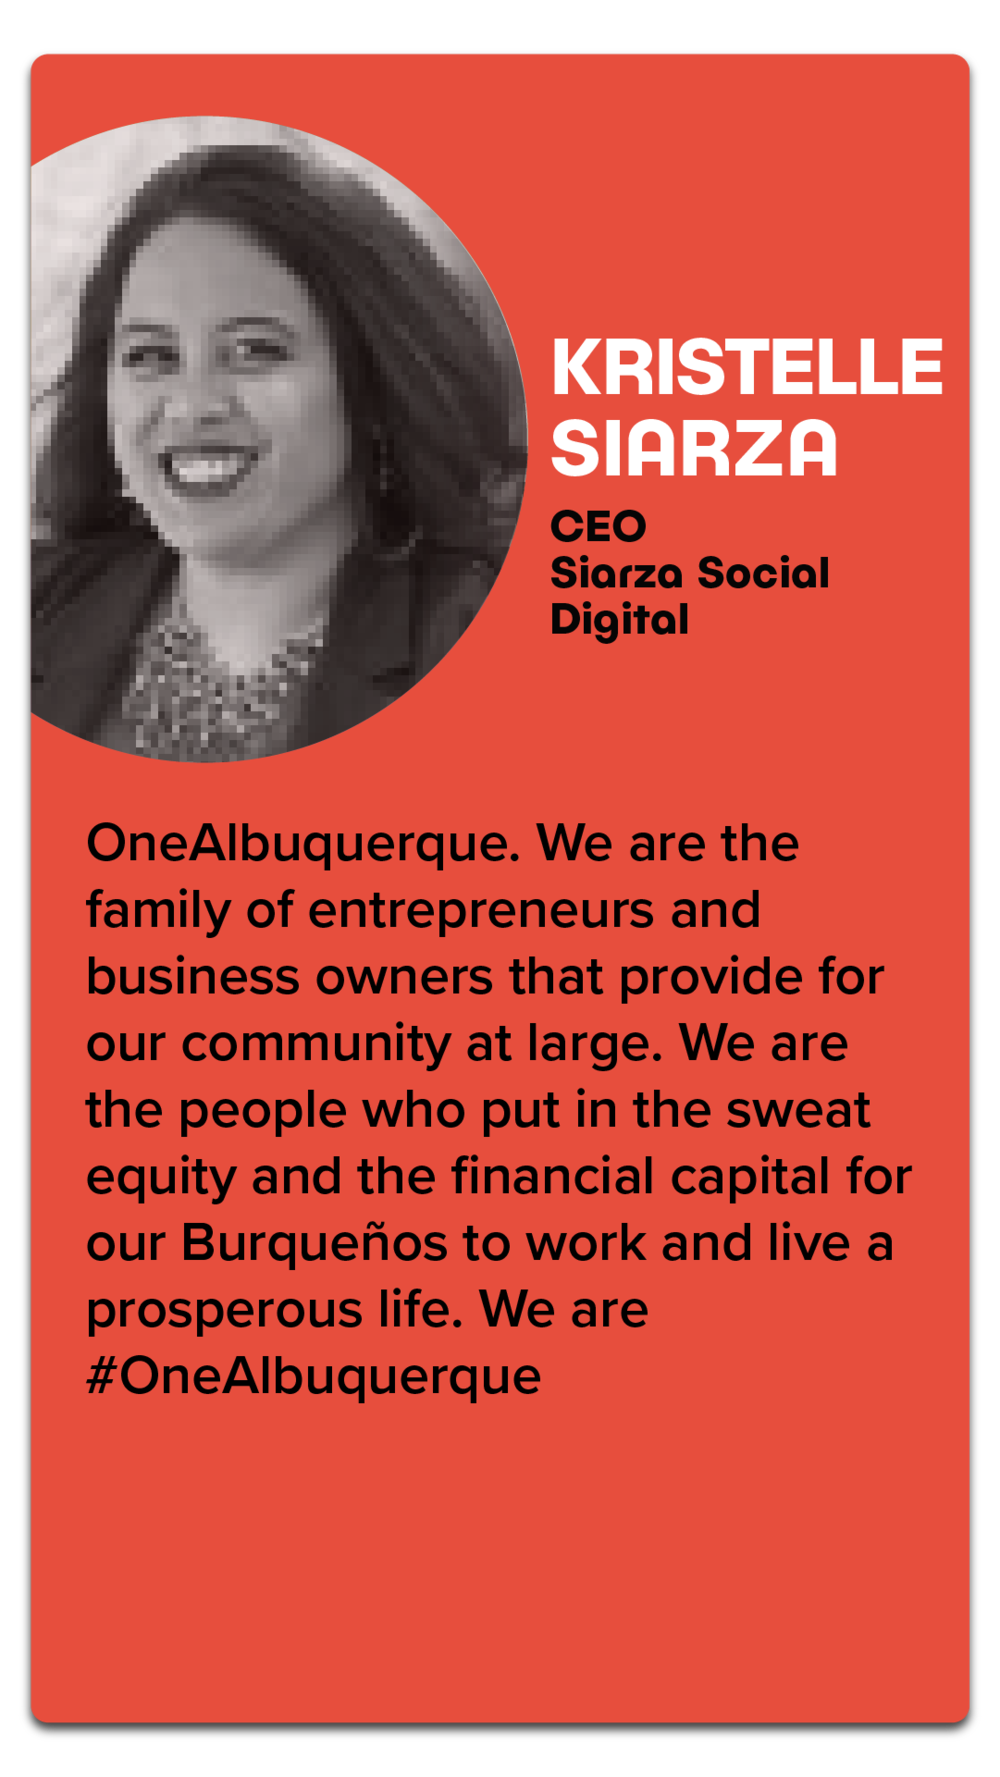 """Kristelle Siarza, CEO, Siarza Social Digital  """"OneAlbuquerque. We are the family or entrepreneur and business owners that provide for our community at large. We are the people who put in the sweat equity and the financial capital for our Burqueños to work and live a prosperous life. We are #OneAlbuquerque."""""""